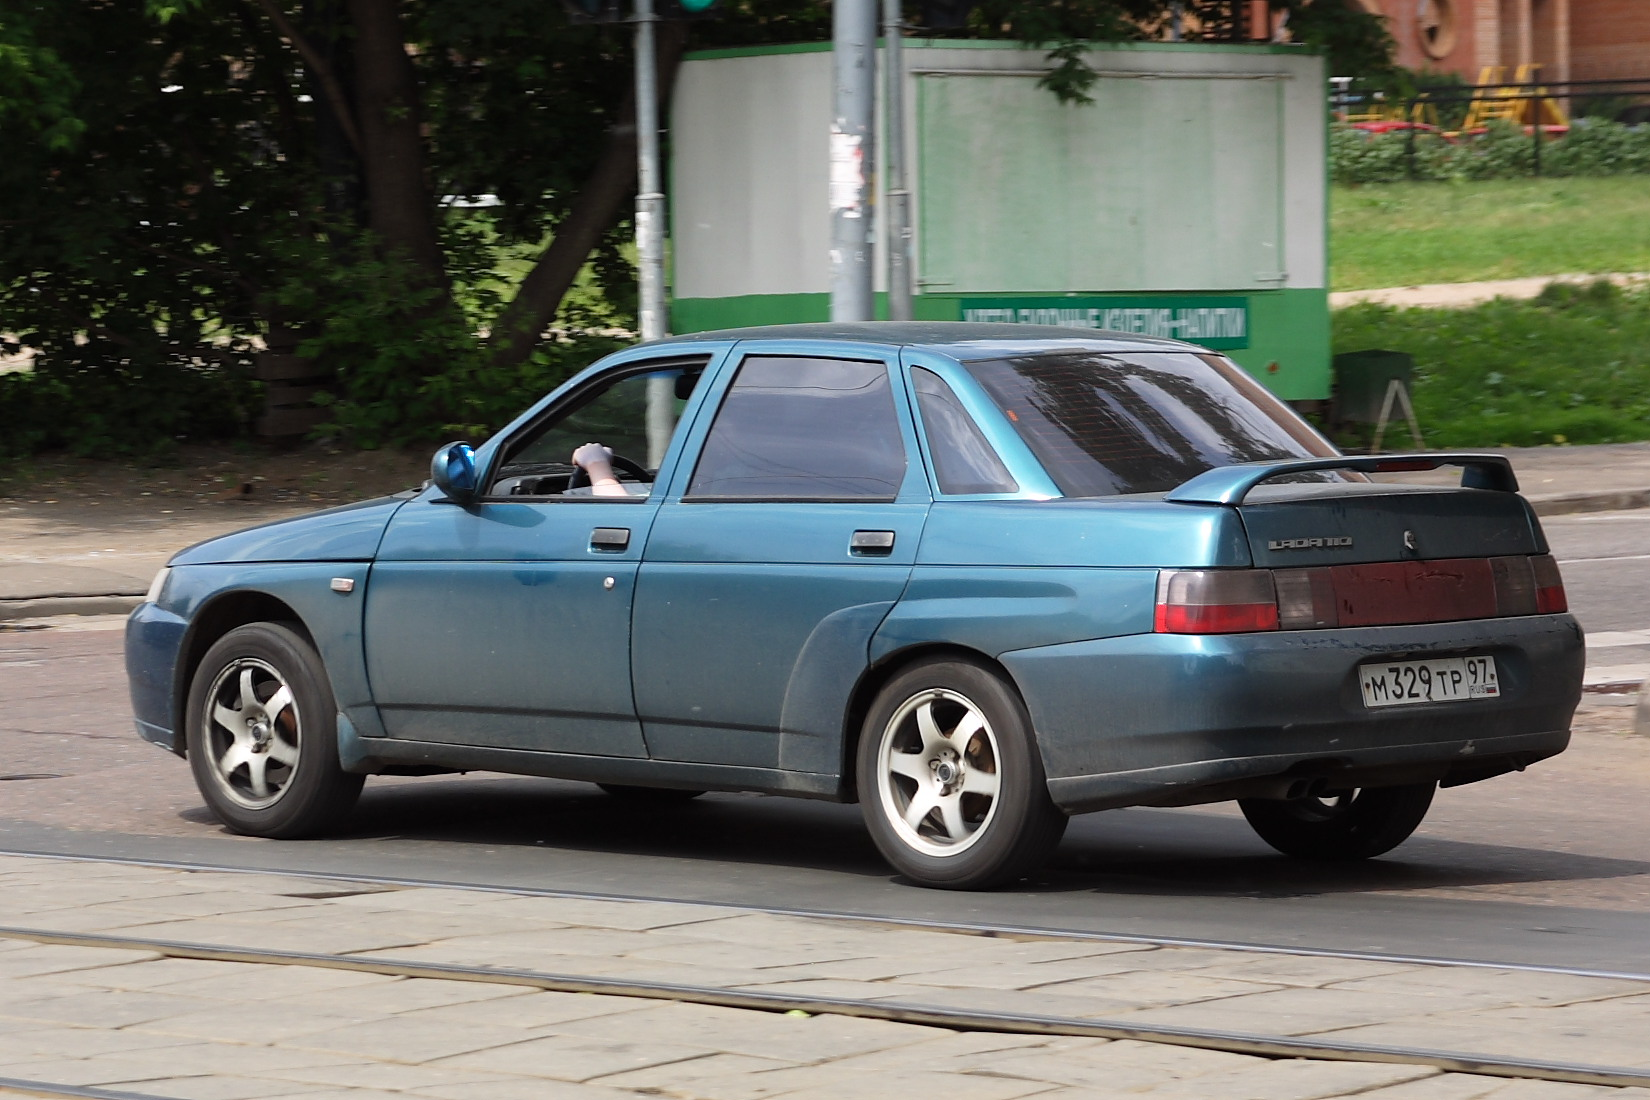 Description lada 21106